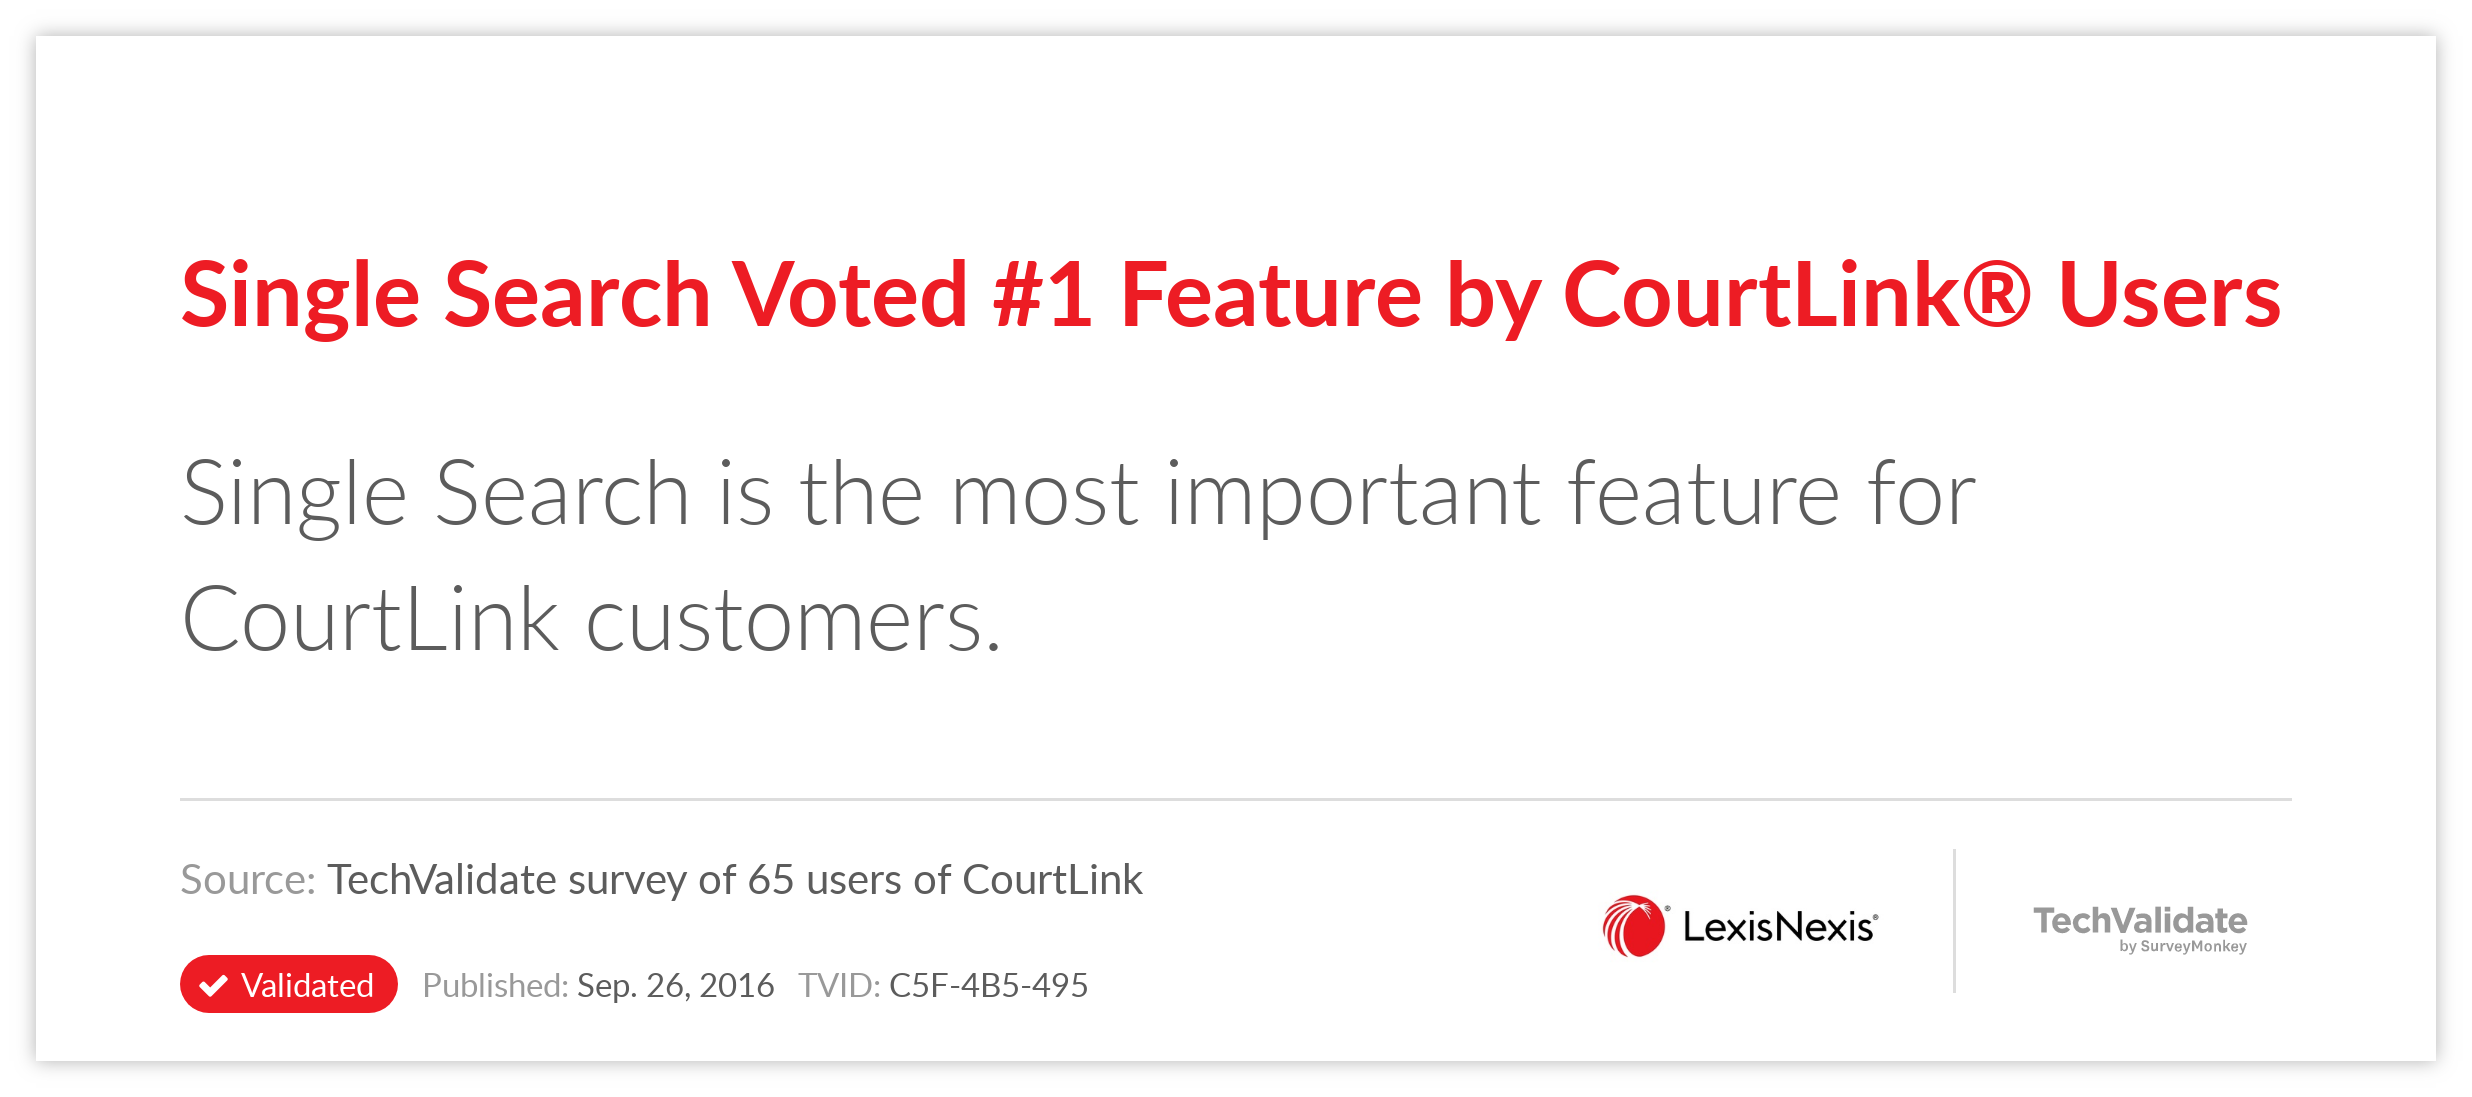 Single Search Voted #1 Feature by CourtLink(R) Users